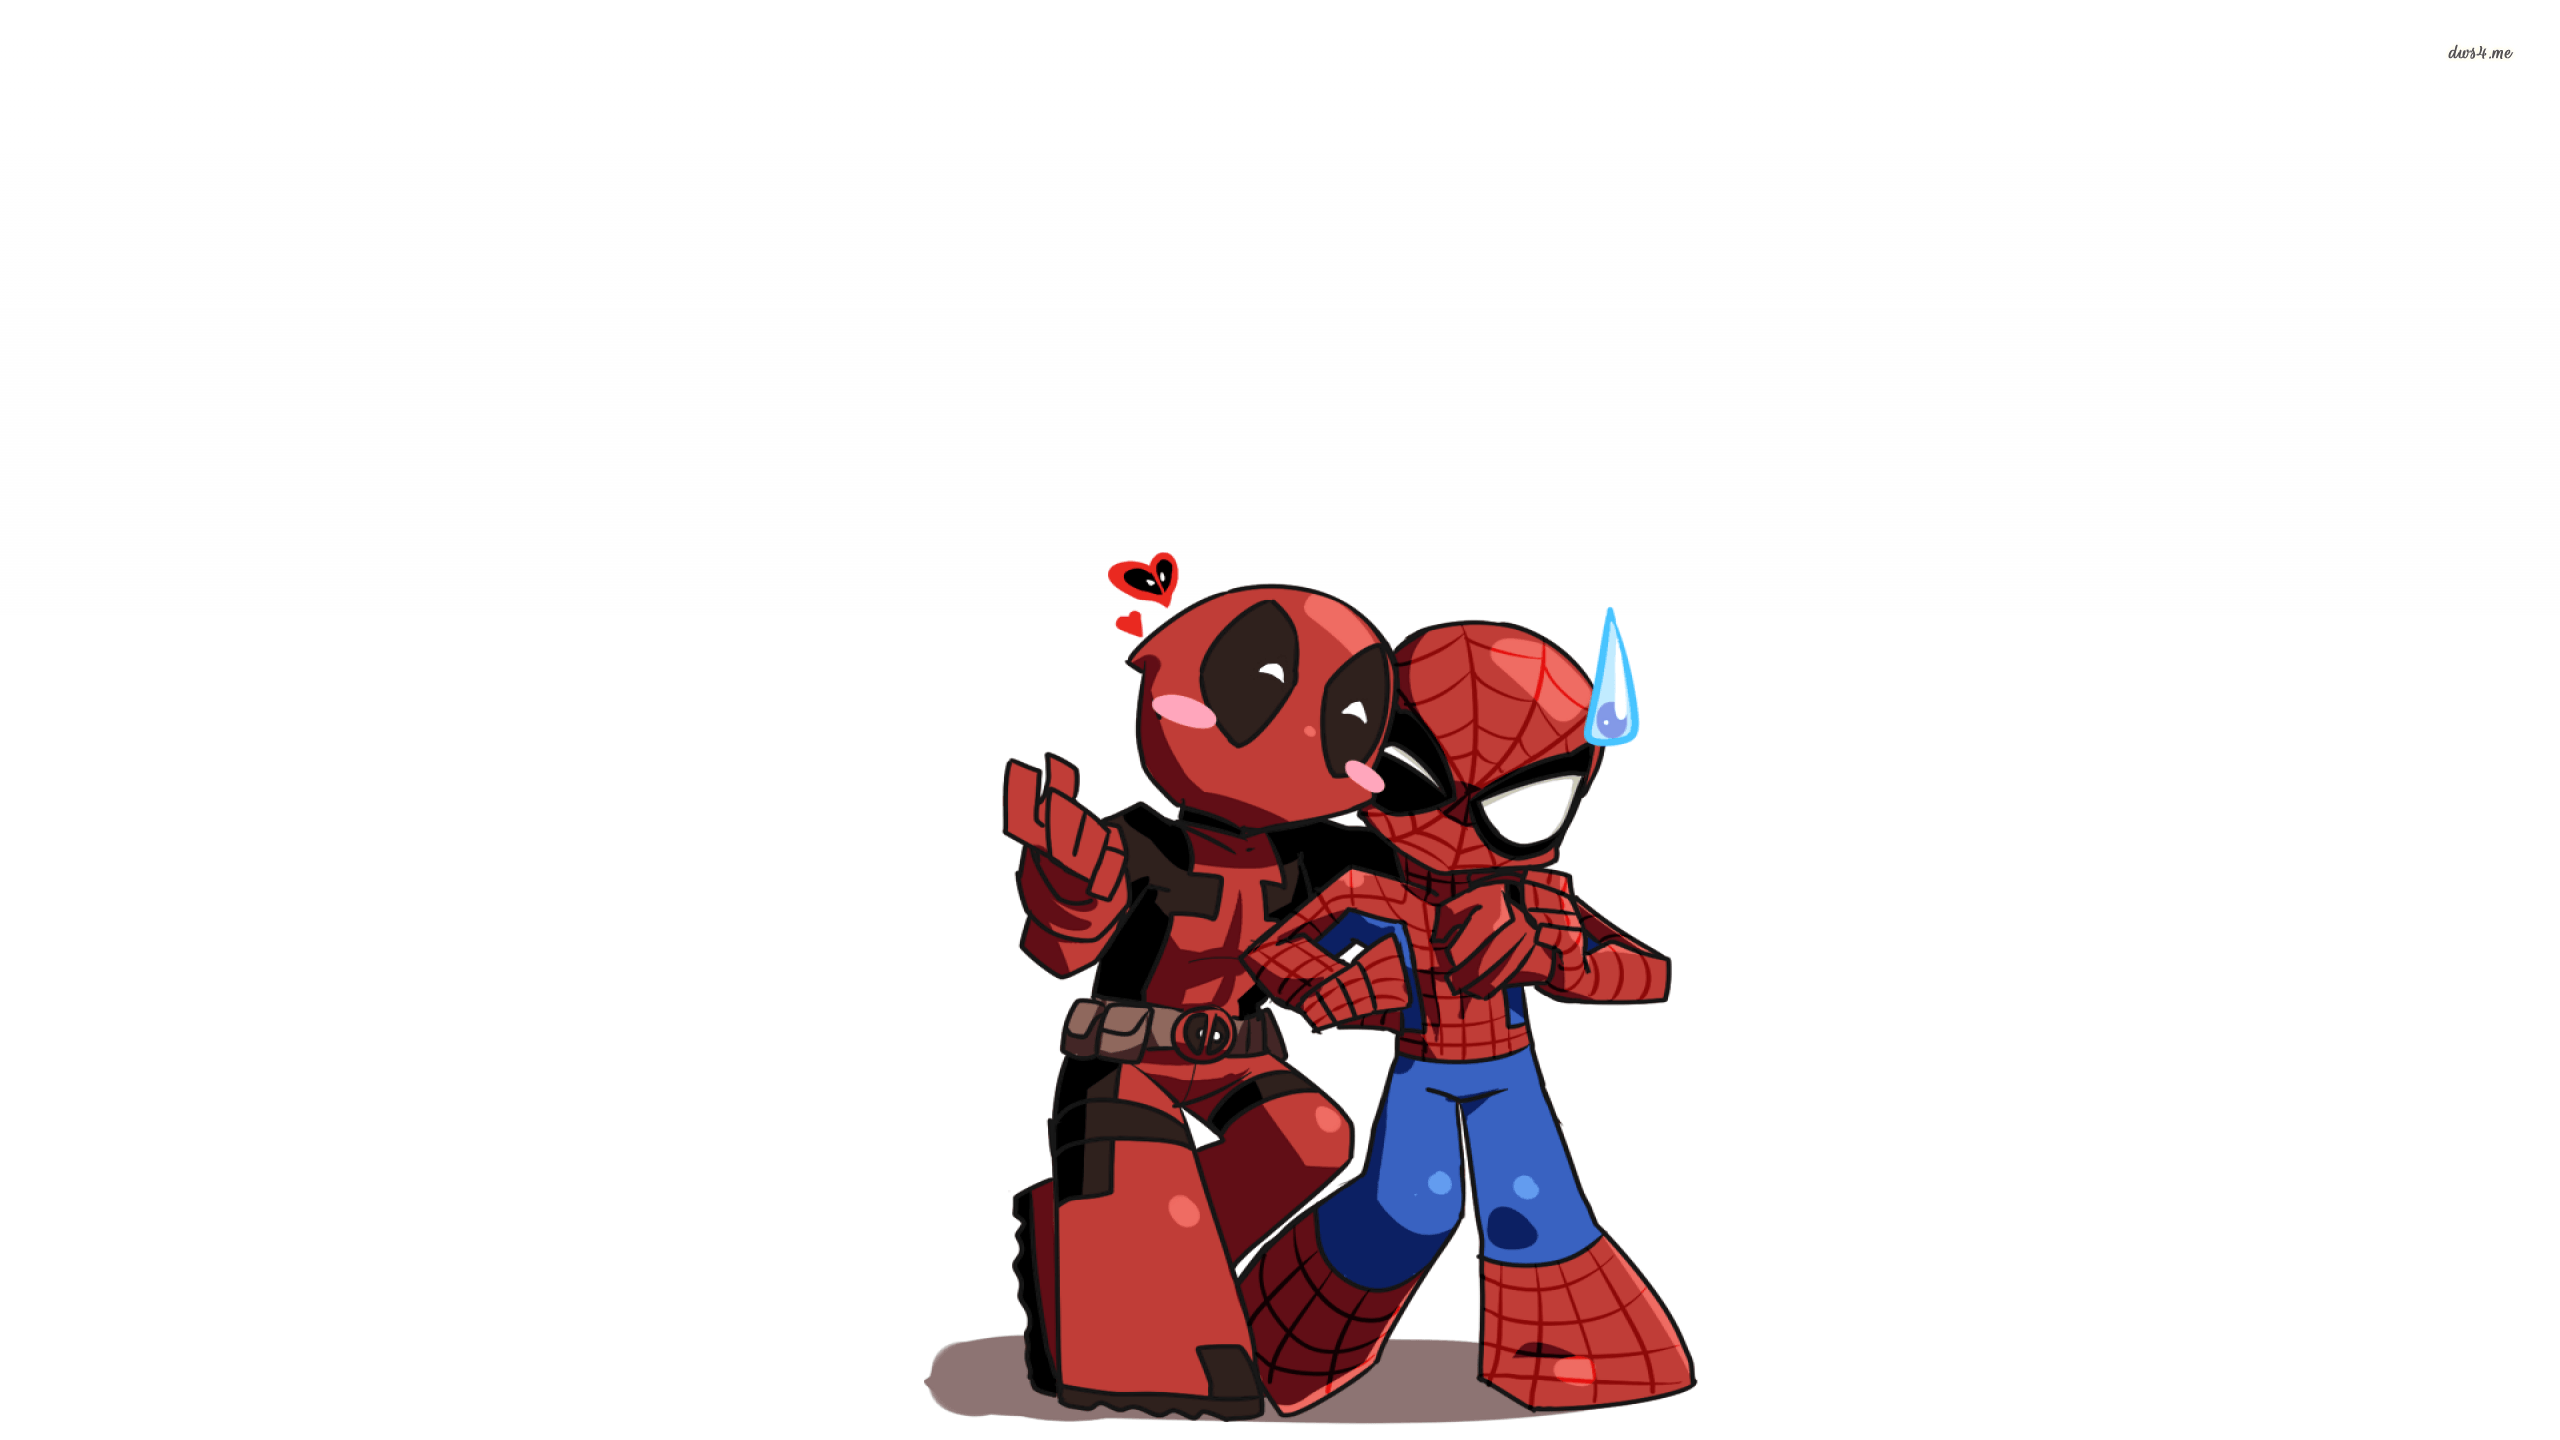 Chibi Deadpool And Spider Man Wallpapers Top Free Chibi Deadpool